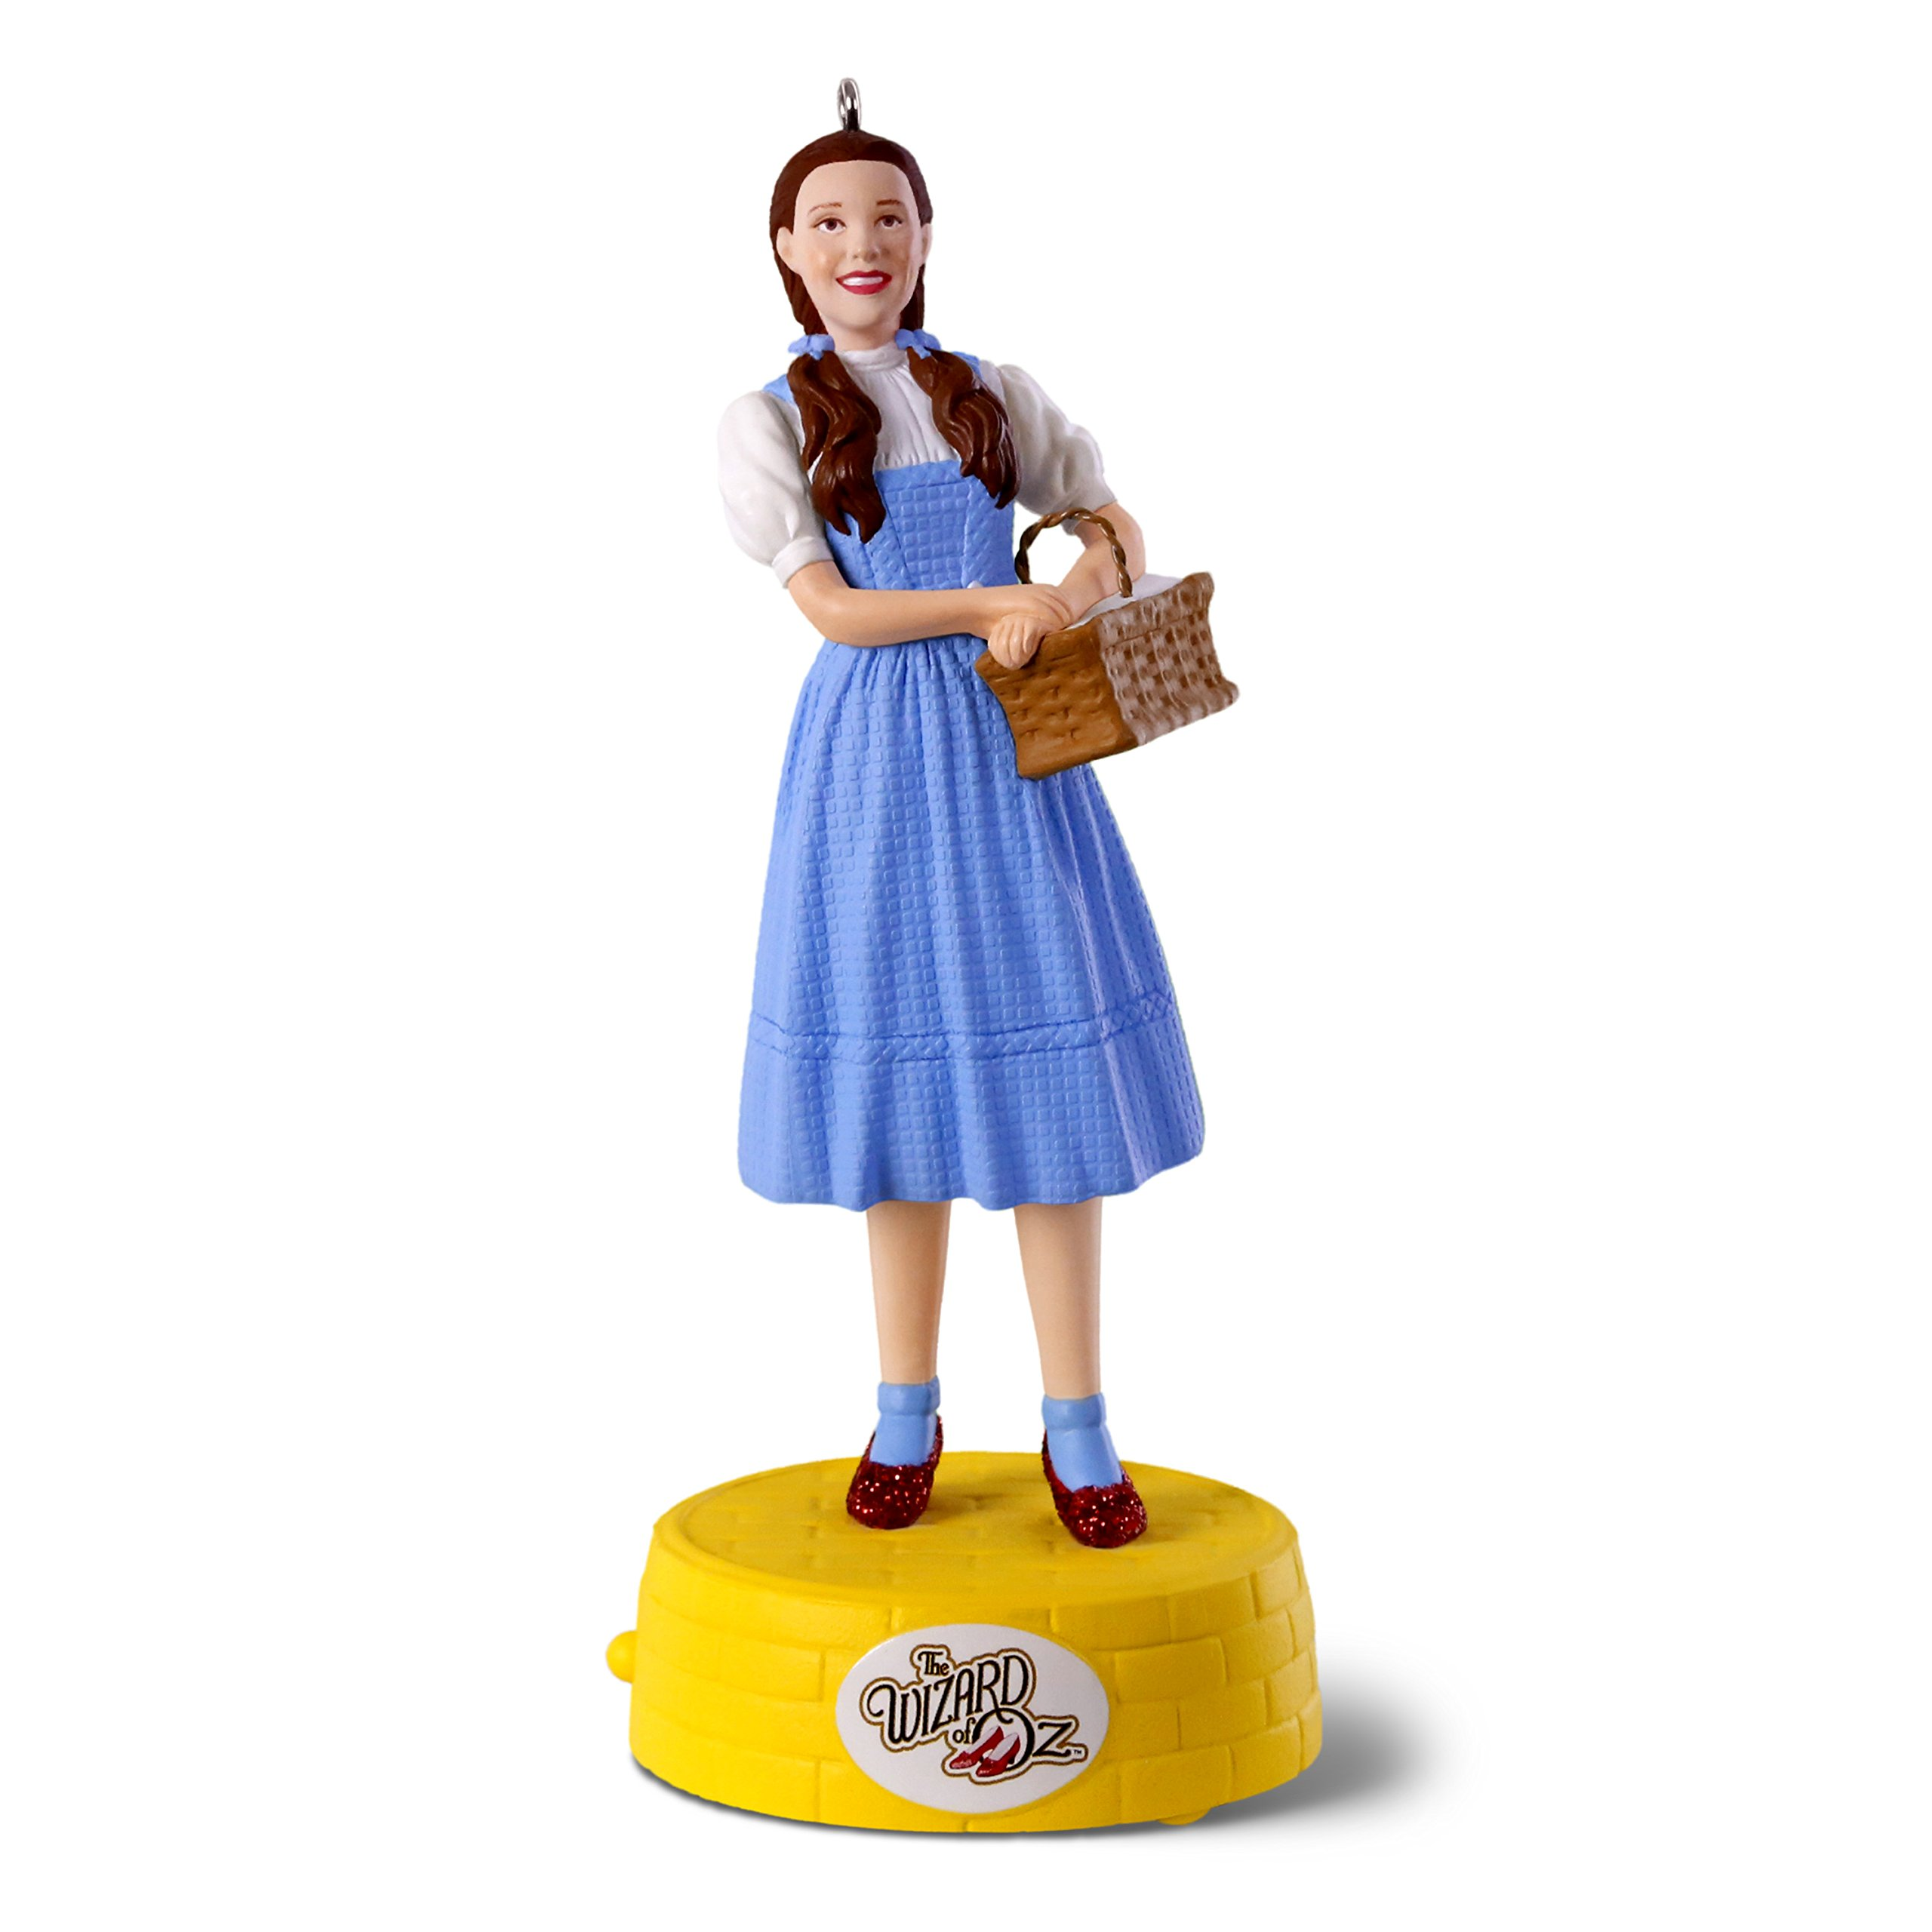 Hallmark Keepsake Christmas Ornament 2018 Year Dated, The Wizard of Oz Collectibles Dorothy Somewhere Over the Rainbow With Music